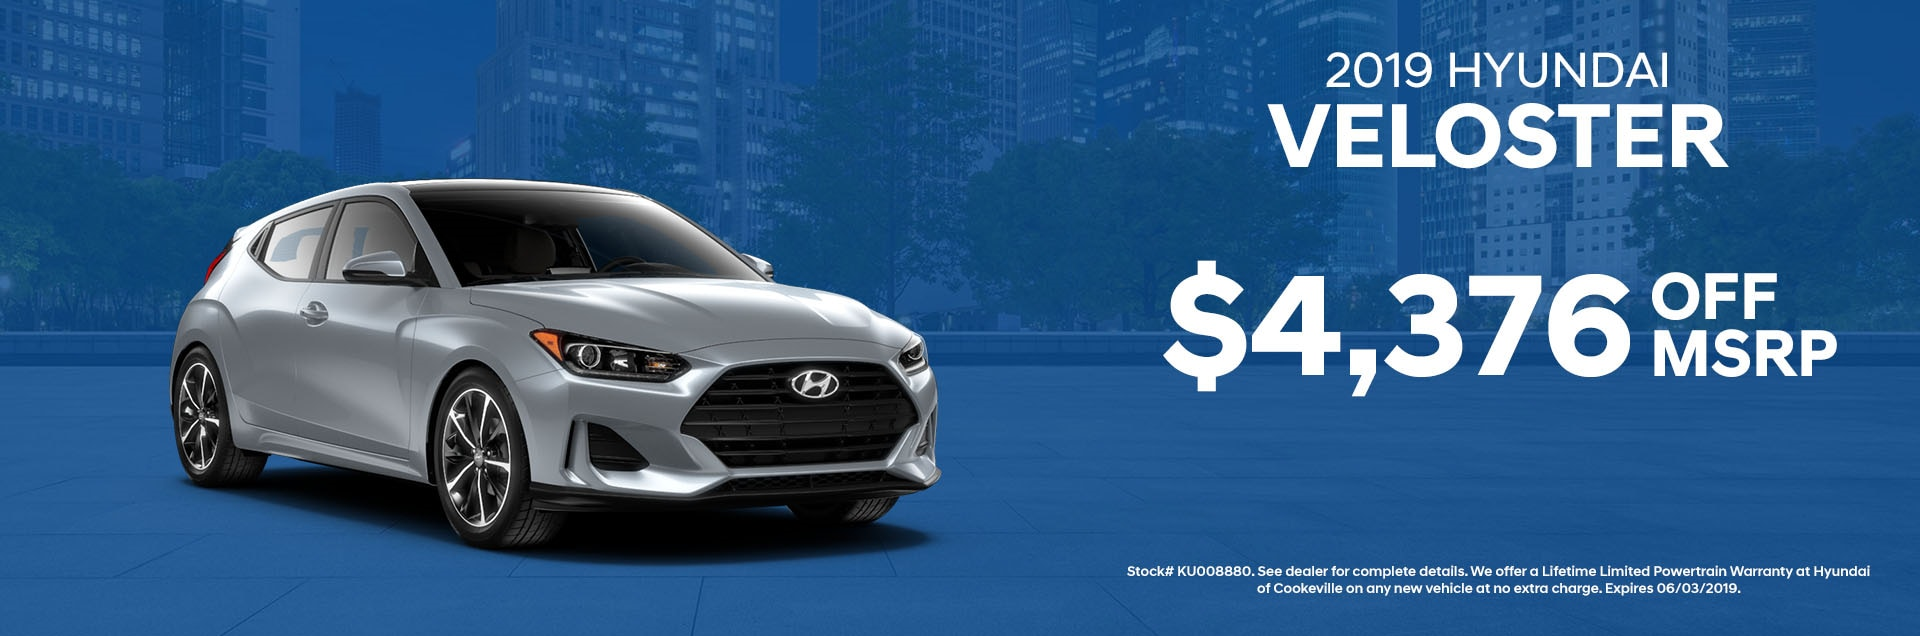 2019 Hyundai Velsoter Specials